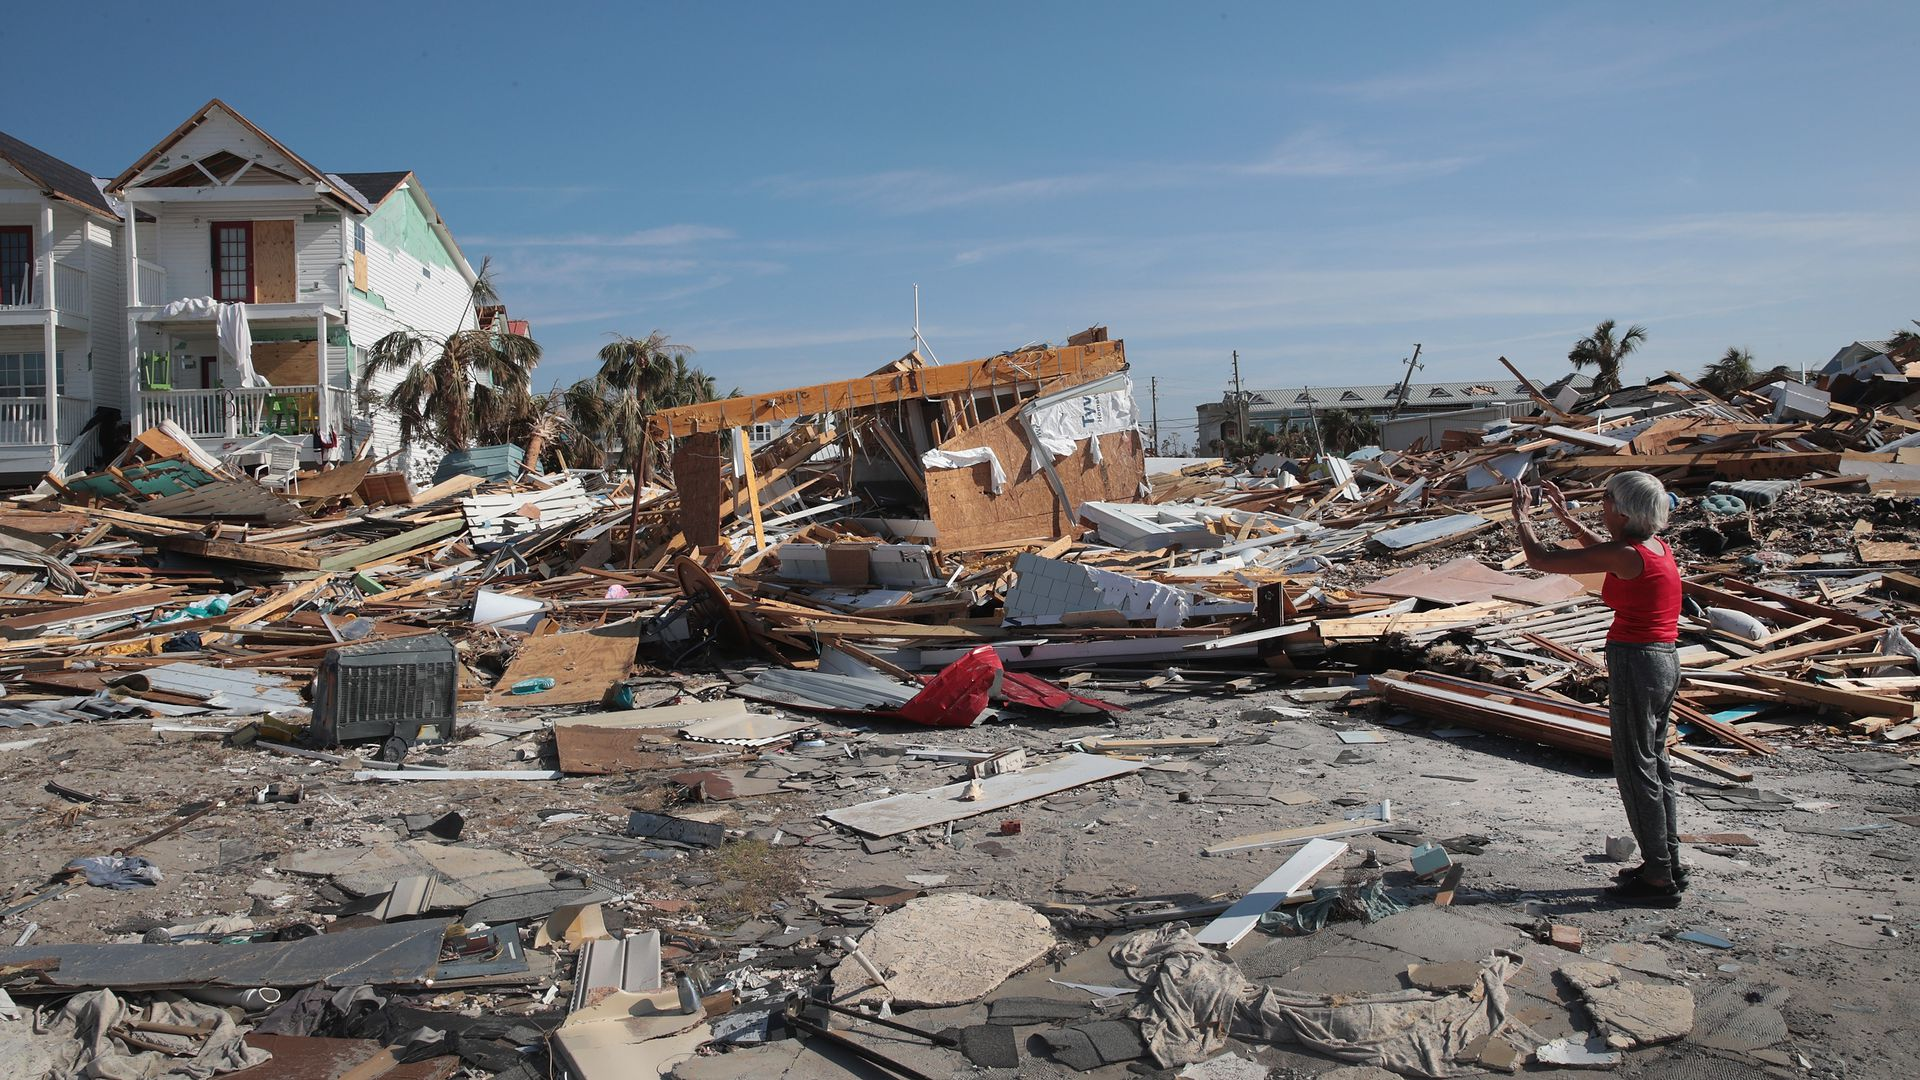 Damage to a home after Hurricane Michael